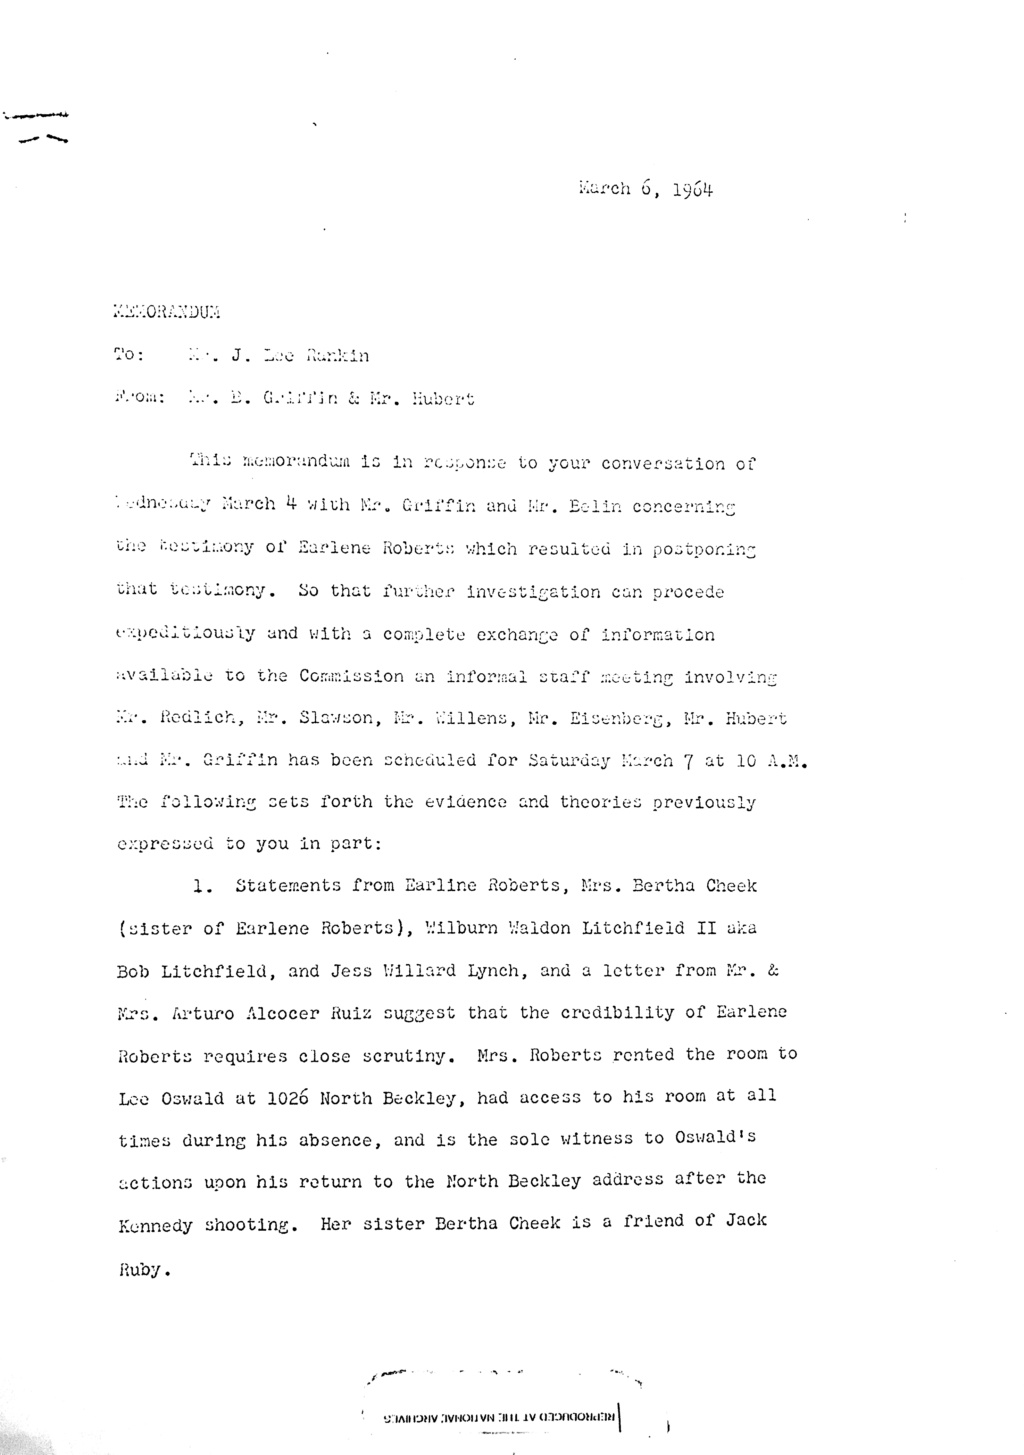 Did Oswald deny living at 1026 N Beckley?  - Page 3 Aug_1810